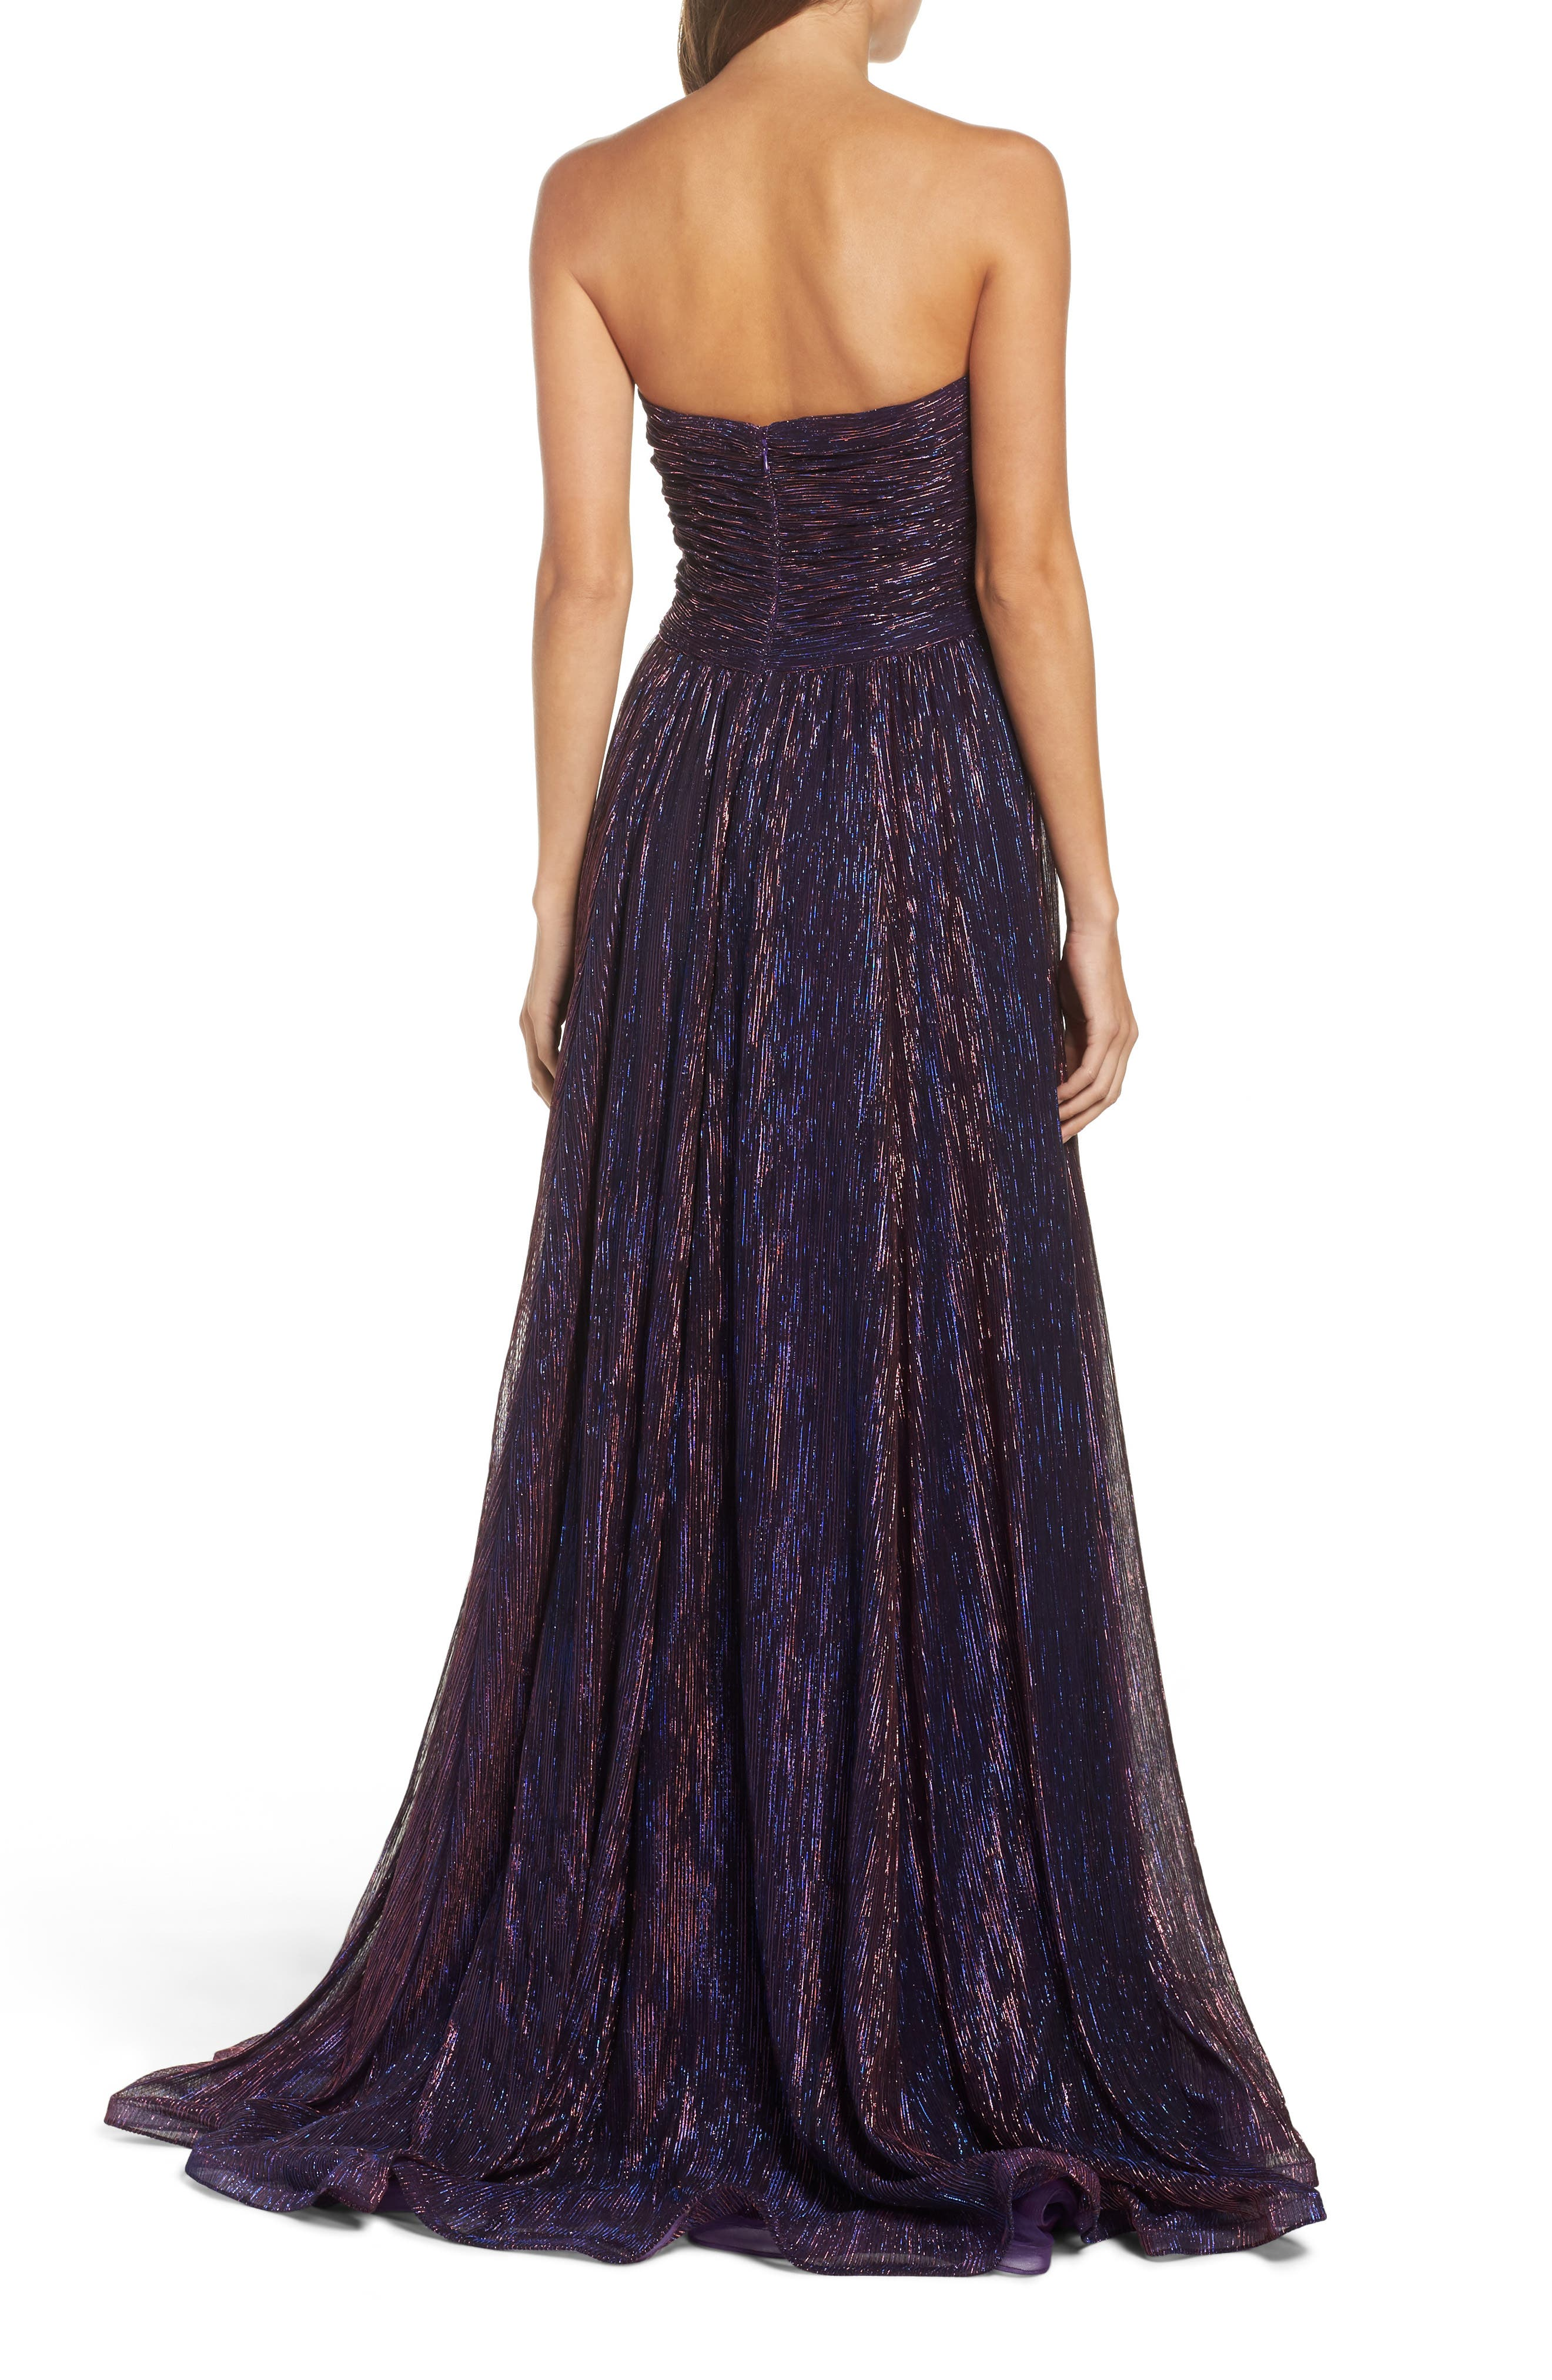 Metallic Strapless A-Line Gown,                             Alternate thumbnail 3, color,                             Purple/ Multi